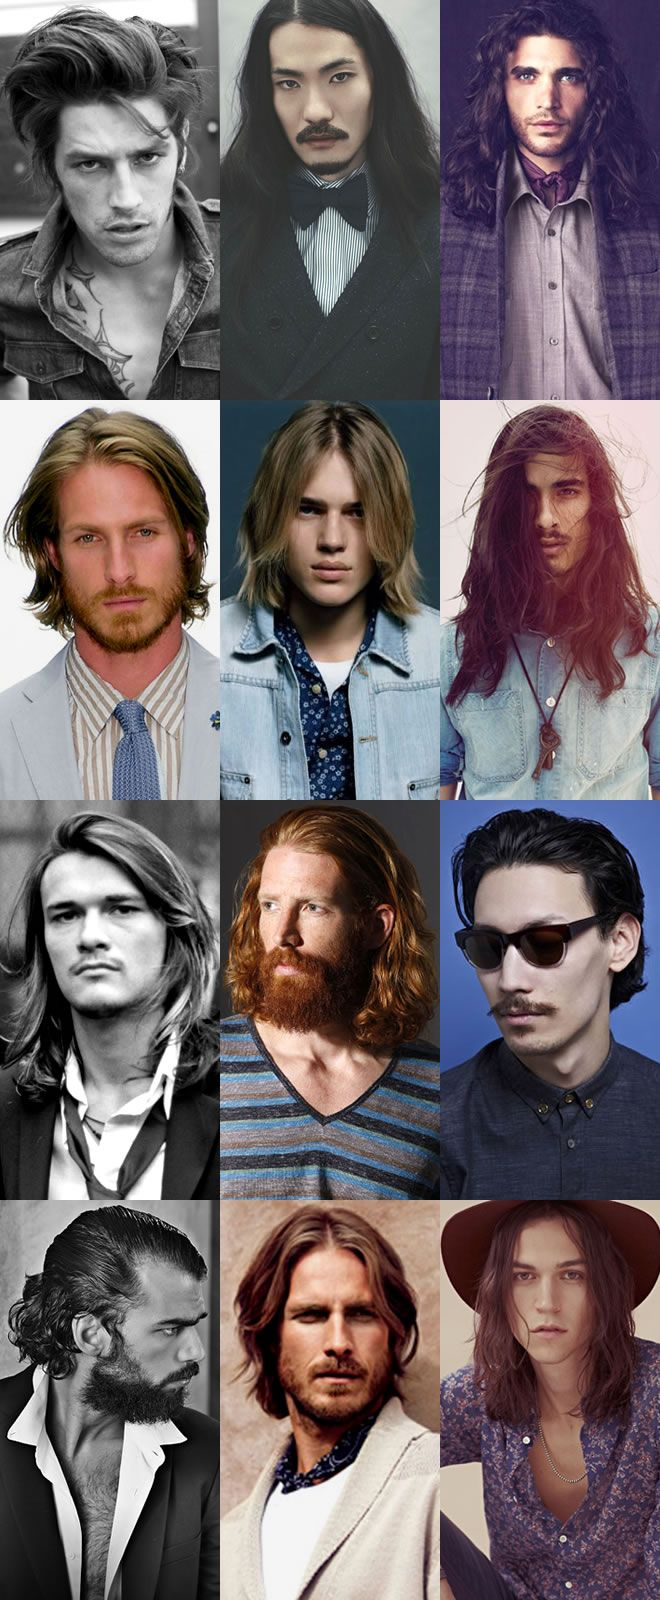 Home 187 posts 187 articles 187 hair styles 187 different hairstyles - Hairstyle Trend Men S Long Hair A Great Article By Robert Baker On Men S Long Hair